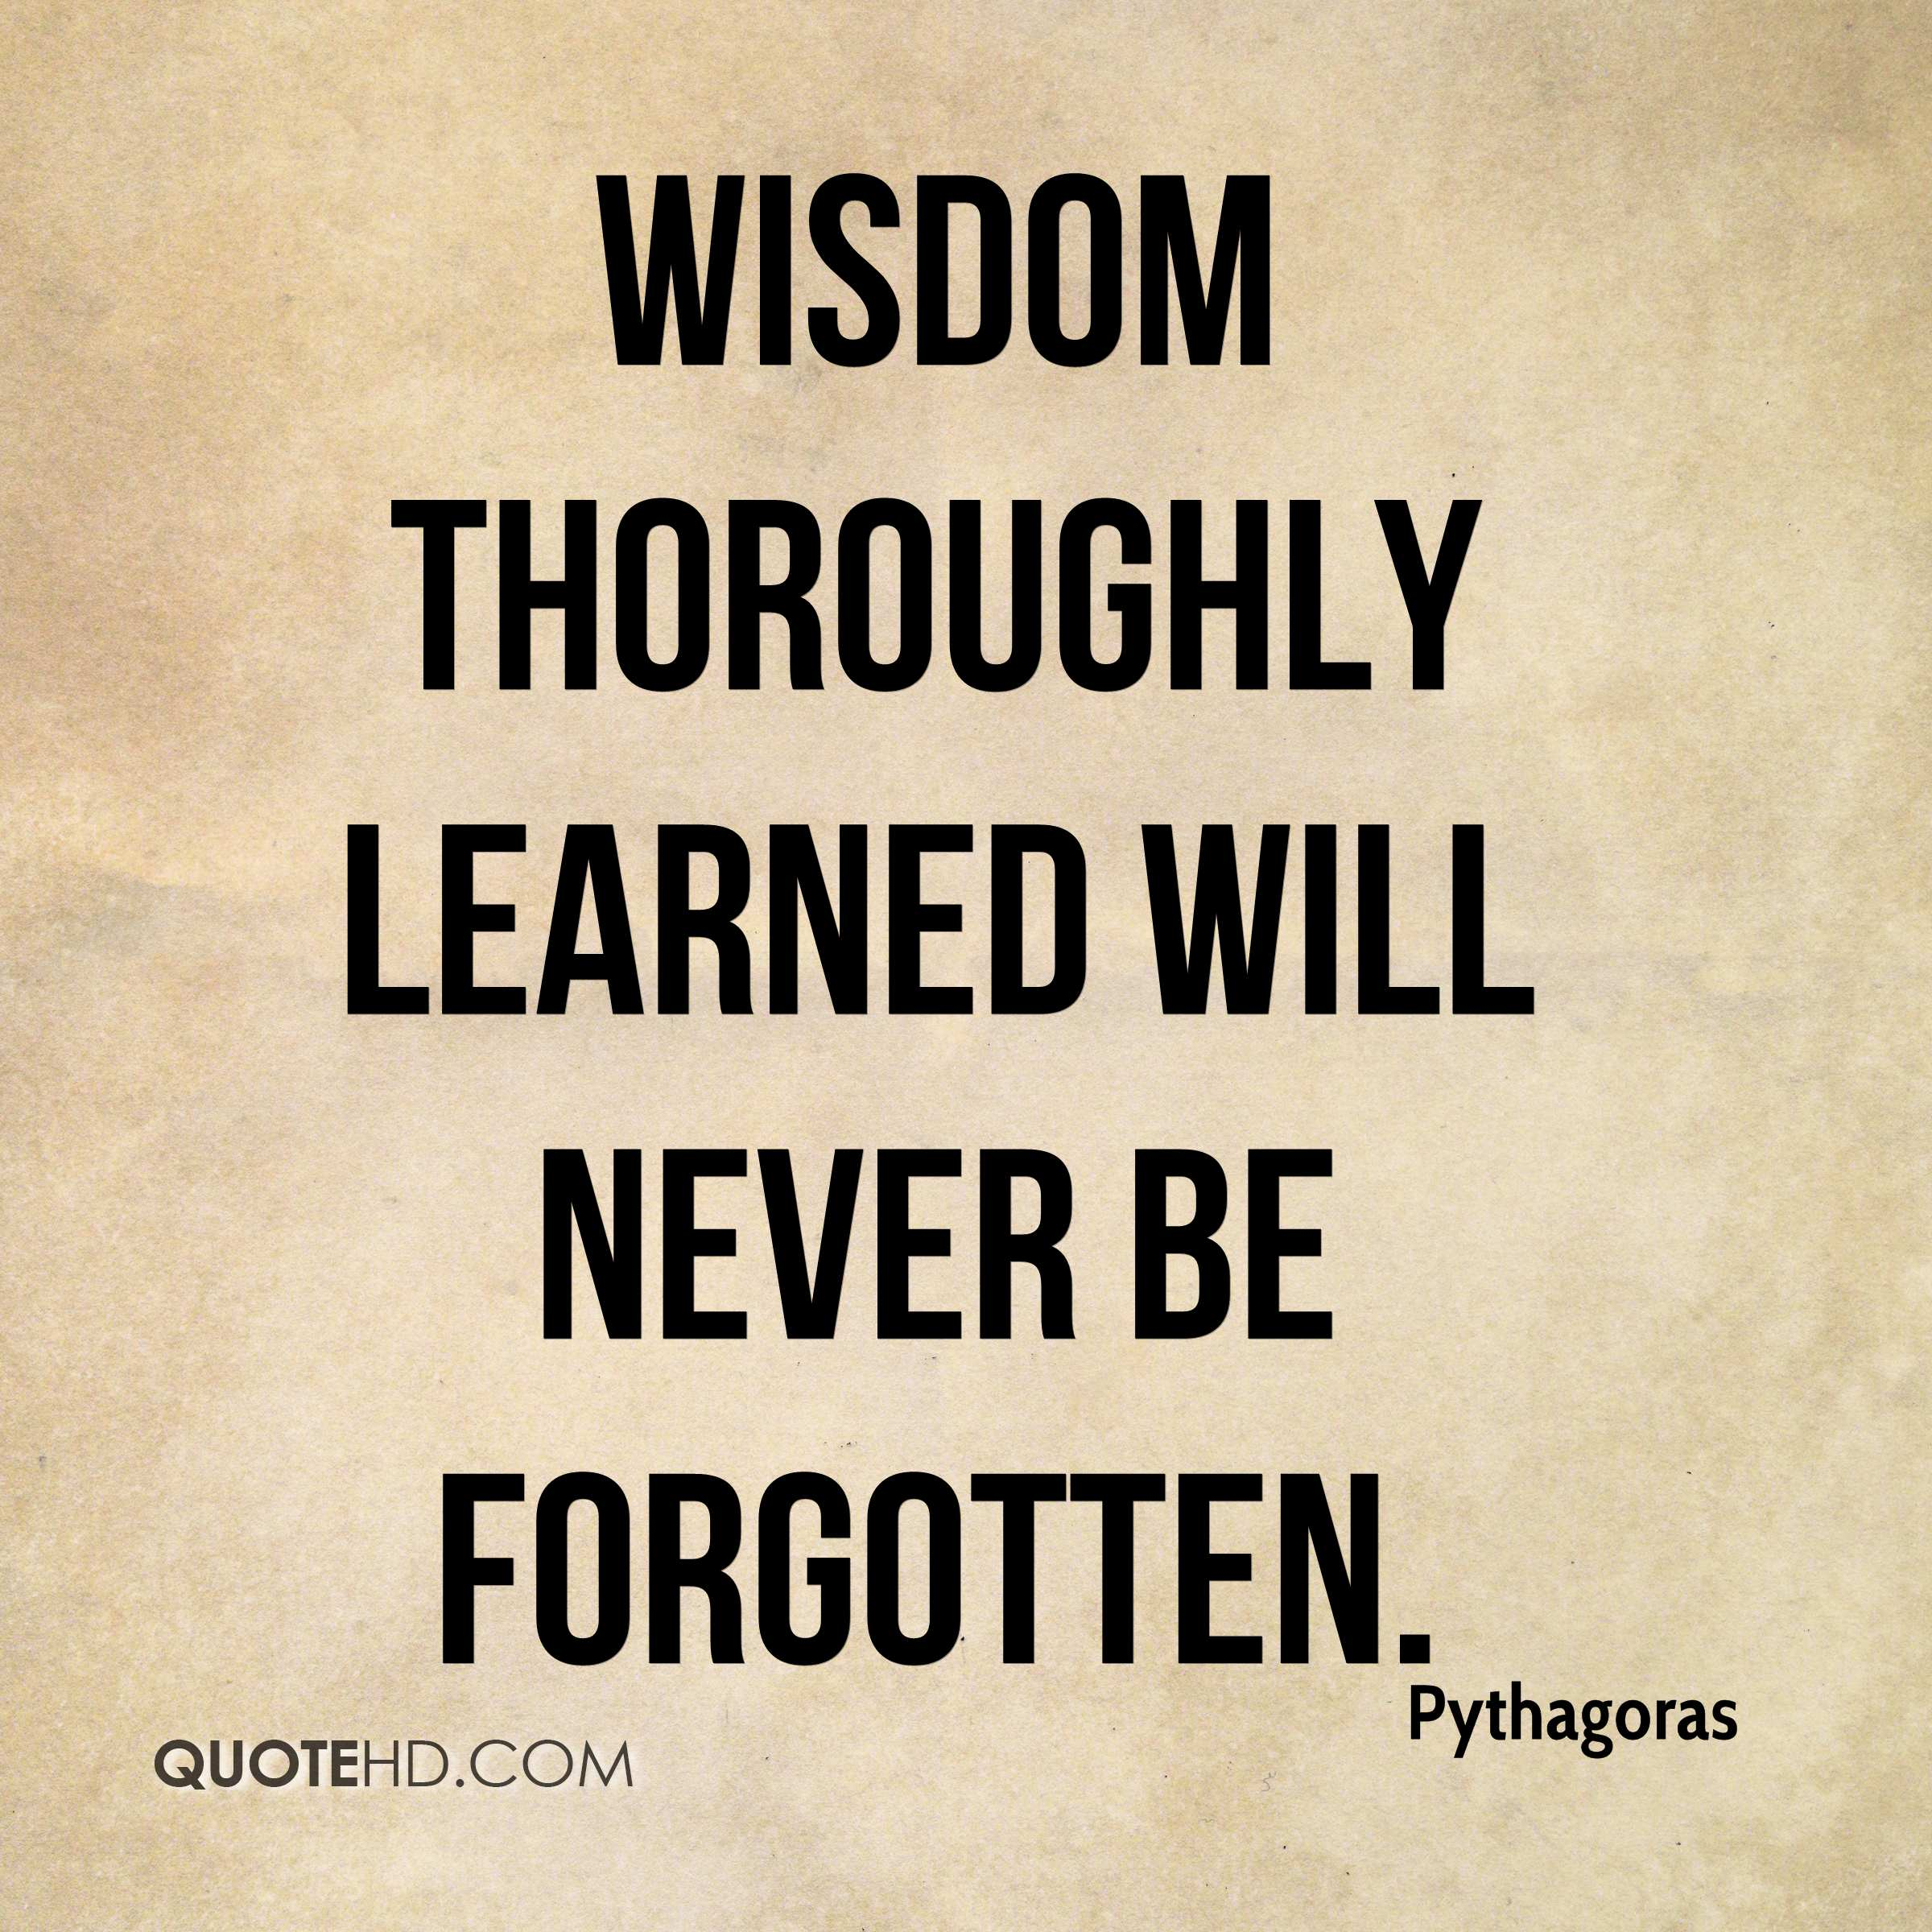 Wisdom thoroughly learned will never be forgotten.